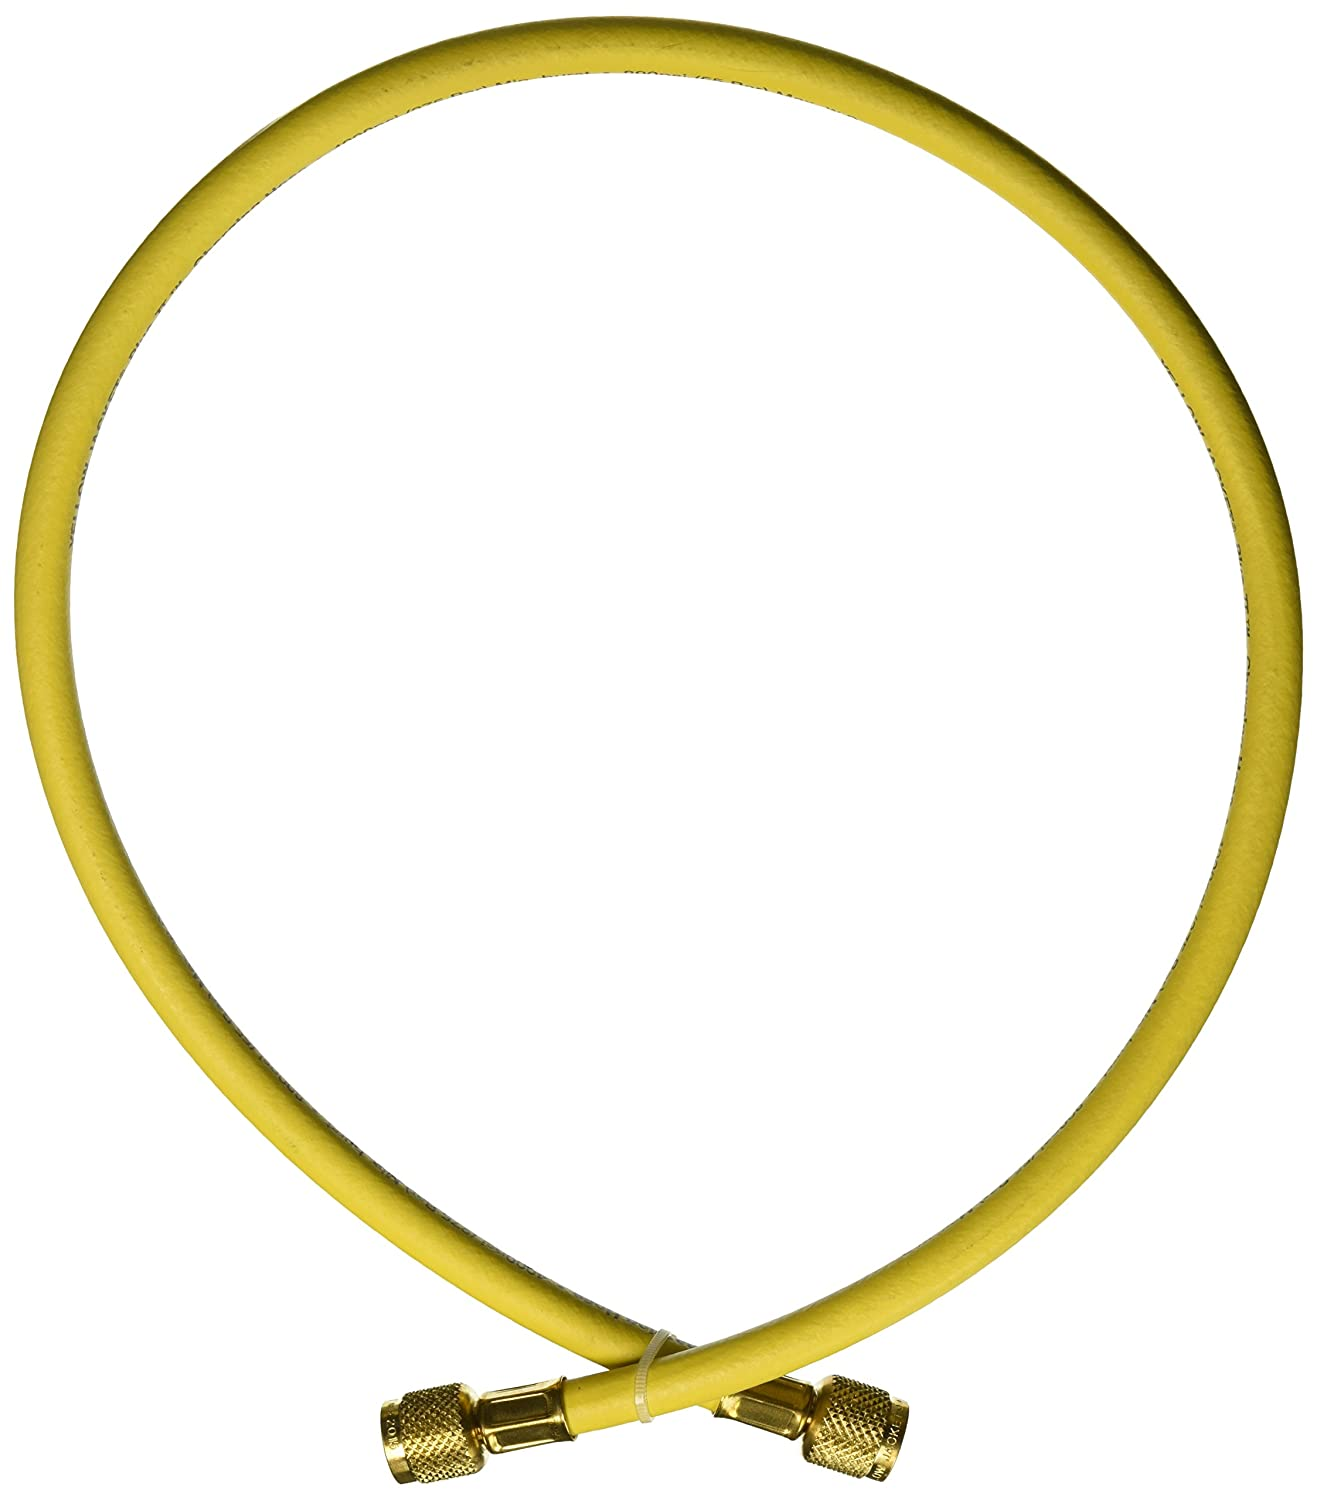 """Yellow Jacket 13036 Special 1/4"""" Original Charging Hoses, 1/4"""" Flare x 1/4"""" Flare, 36"""", Yellow/Red/Blue: Hydraulic Adapters: Industrial & Scientific"""